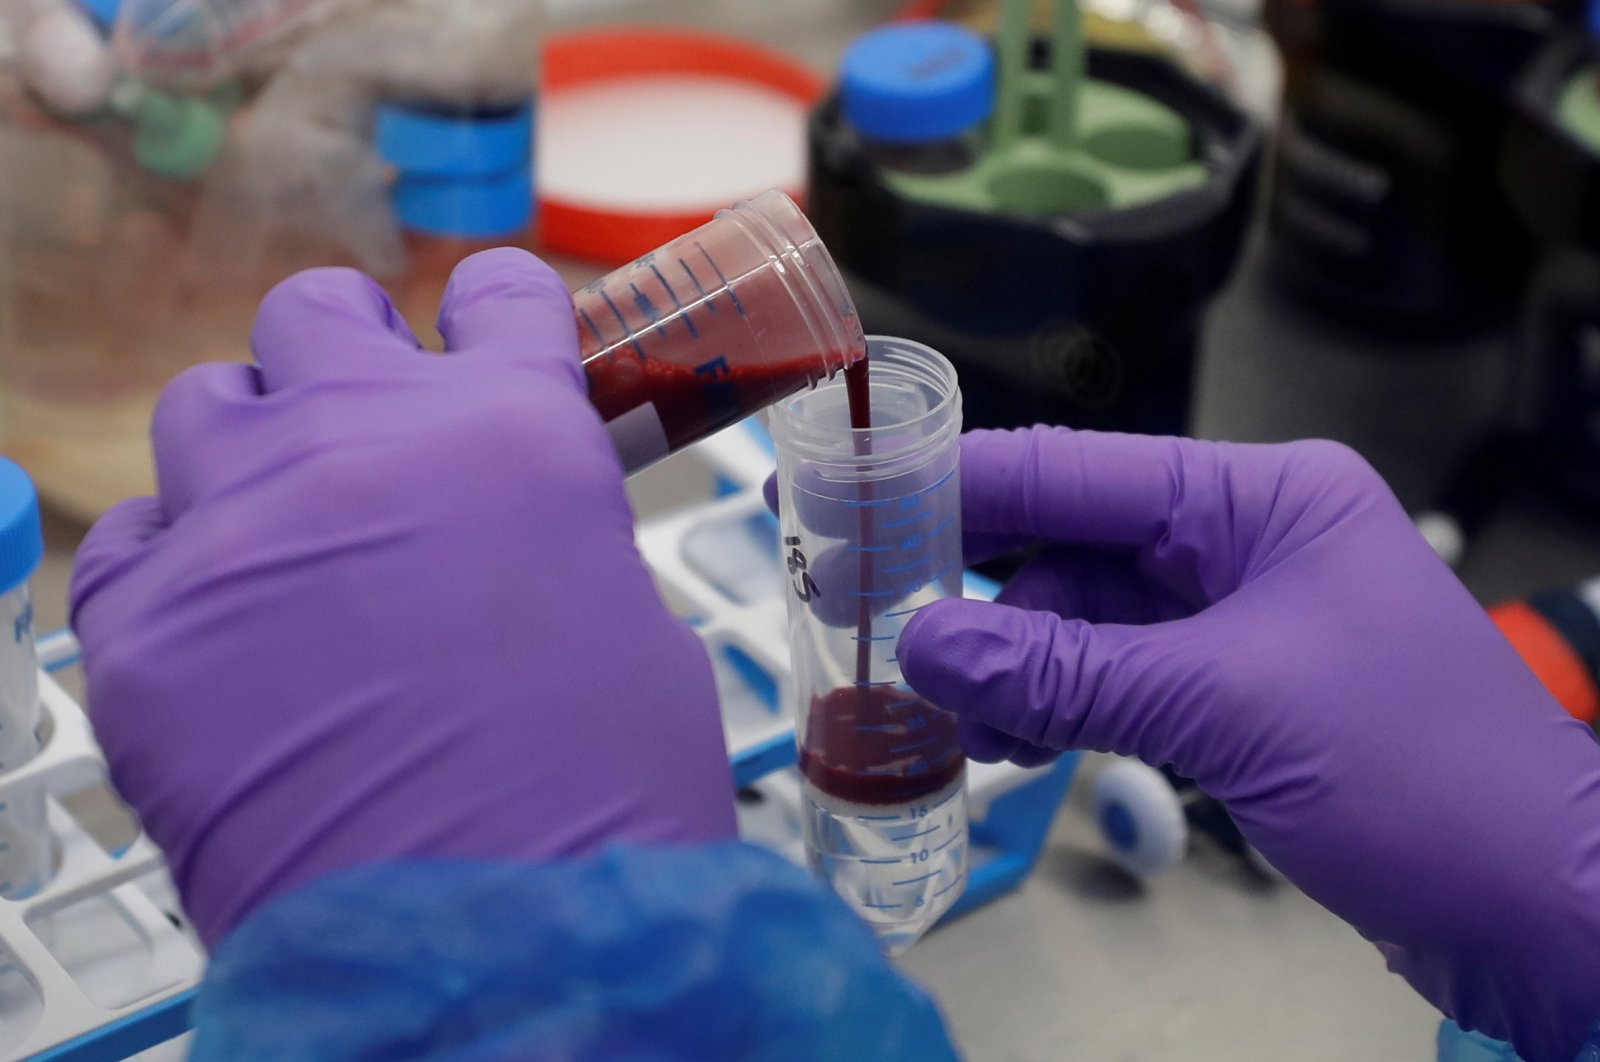 Blood samples from patients infected with the coronavirus are prepared for analysis in Cambridge, U.K., Oct. 2, 2020. (REUTERS Photo)